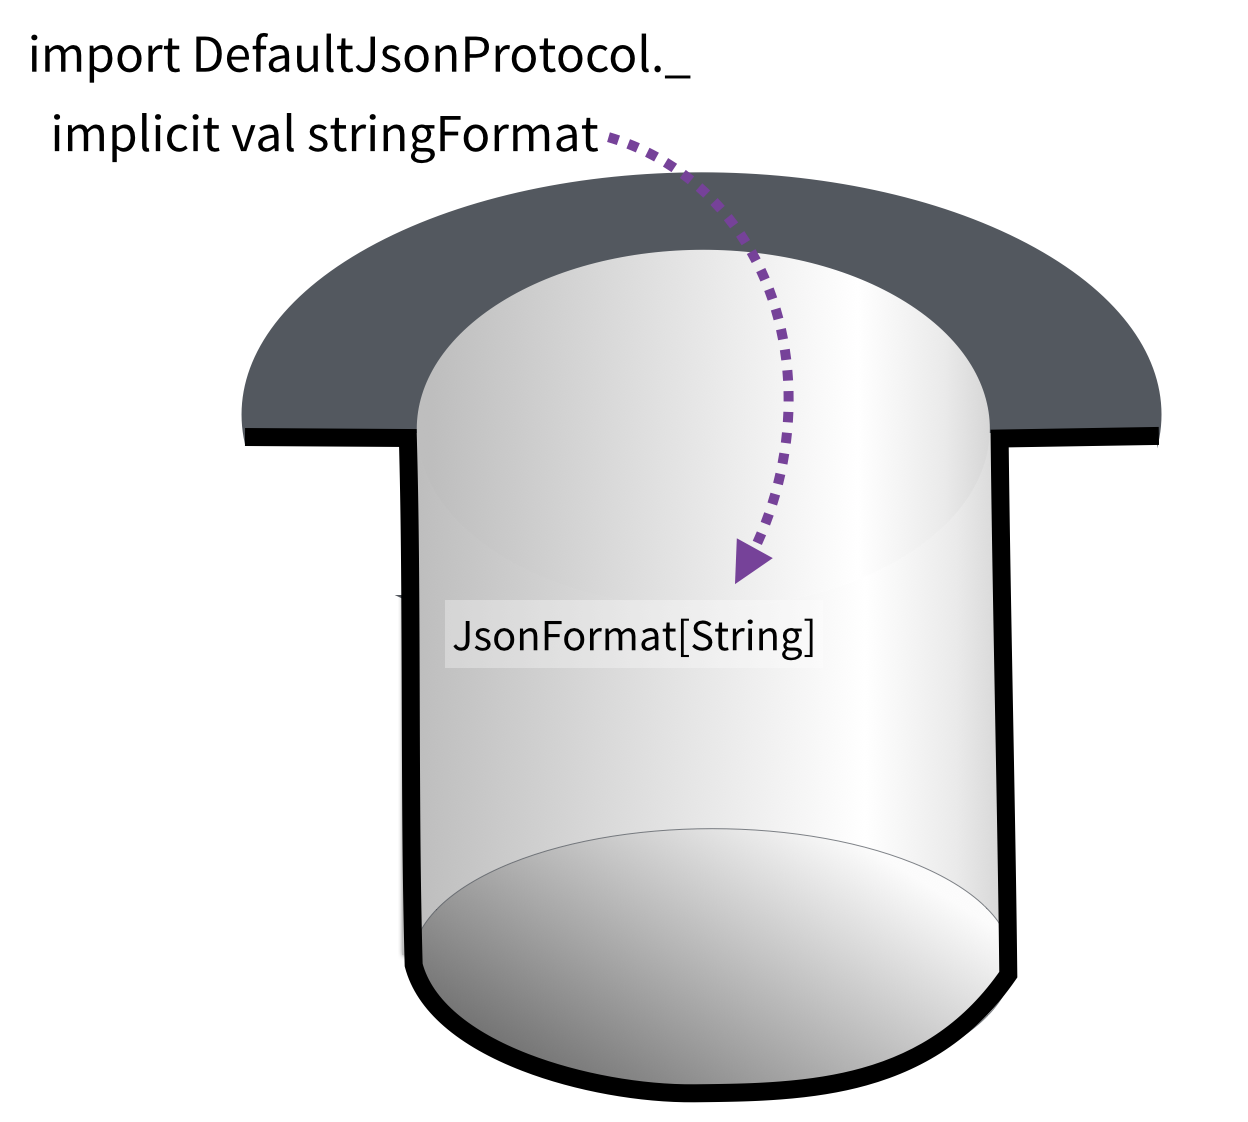 the magic hat: importing DefaultJsonProtocol puts a JsonFormat of String in the hat